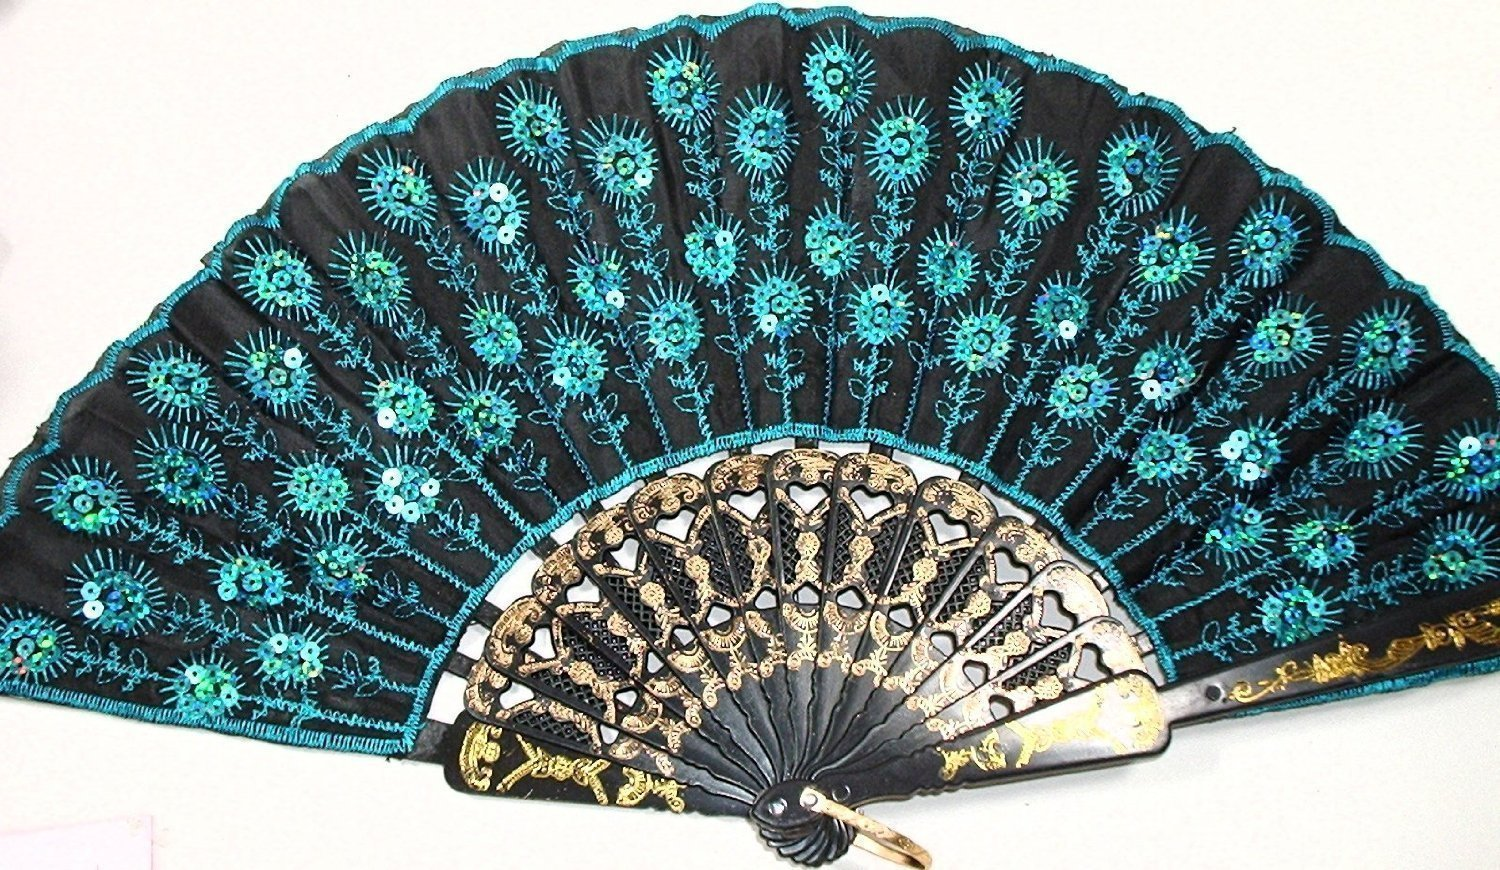 doopootoo Peacock Pattern Sequin Fabric Hand Fan Decorative Fashionable (New Blue)